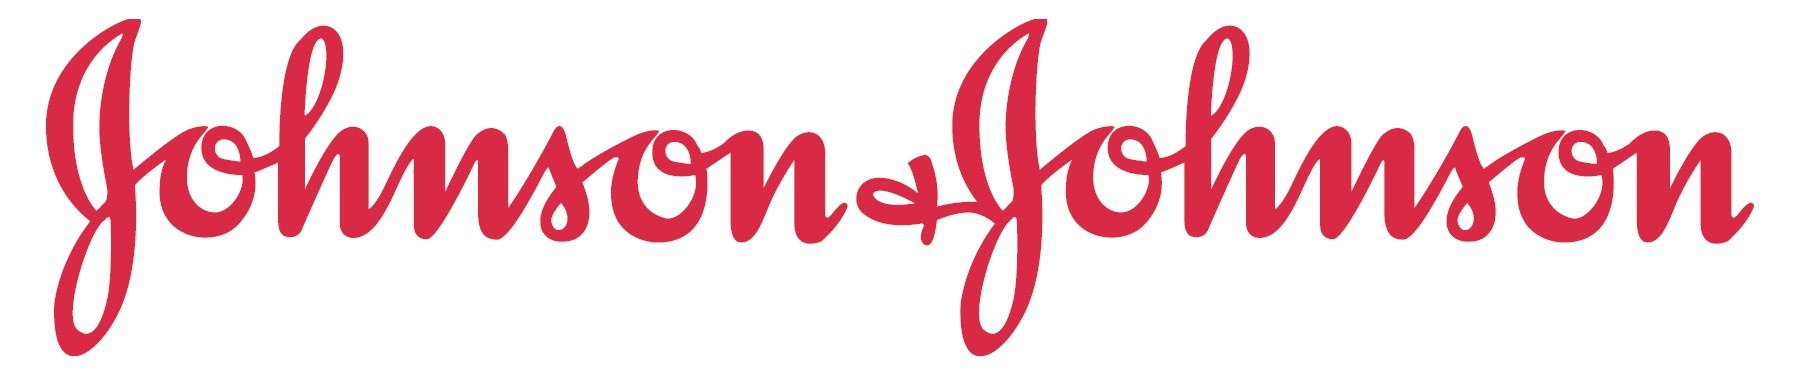 johnson-and-johnson-logojpg